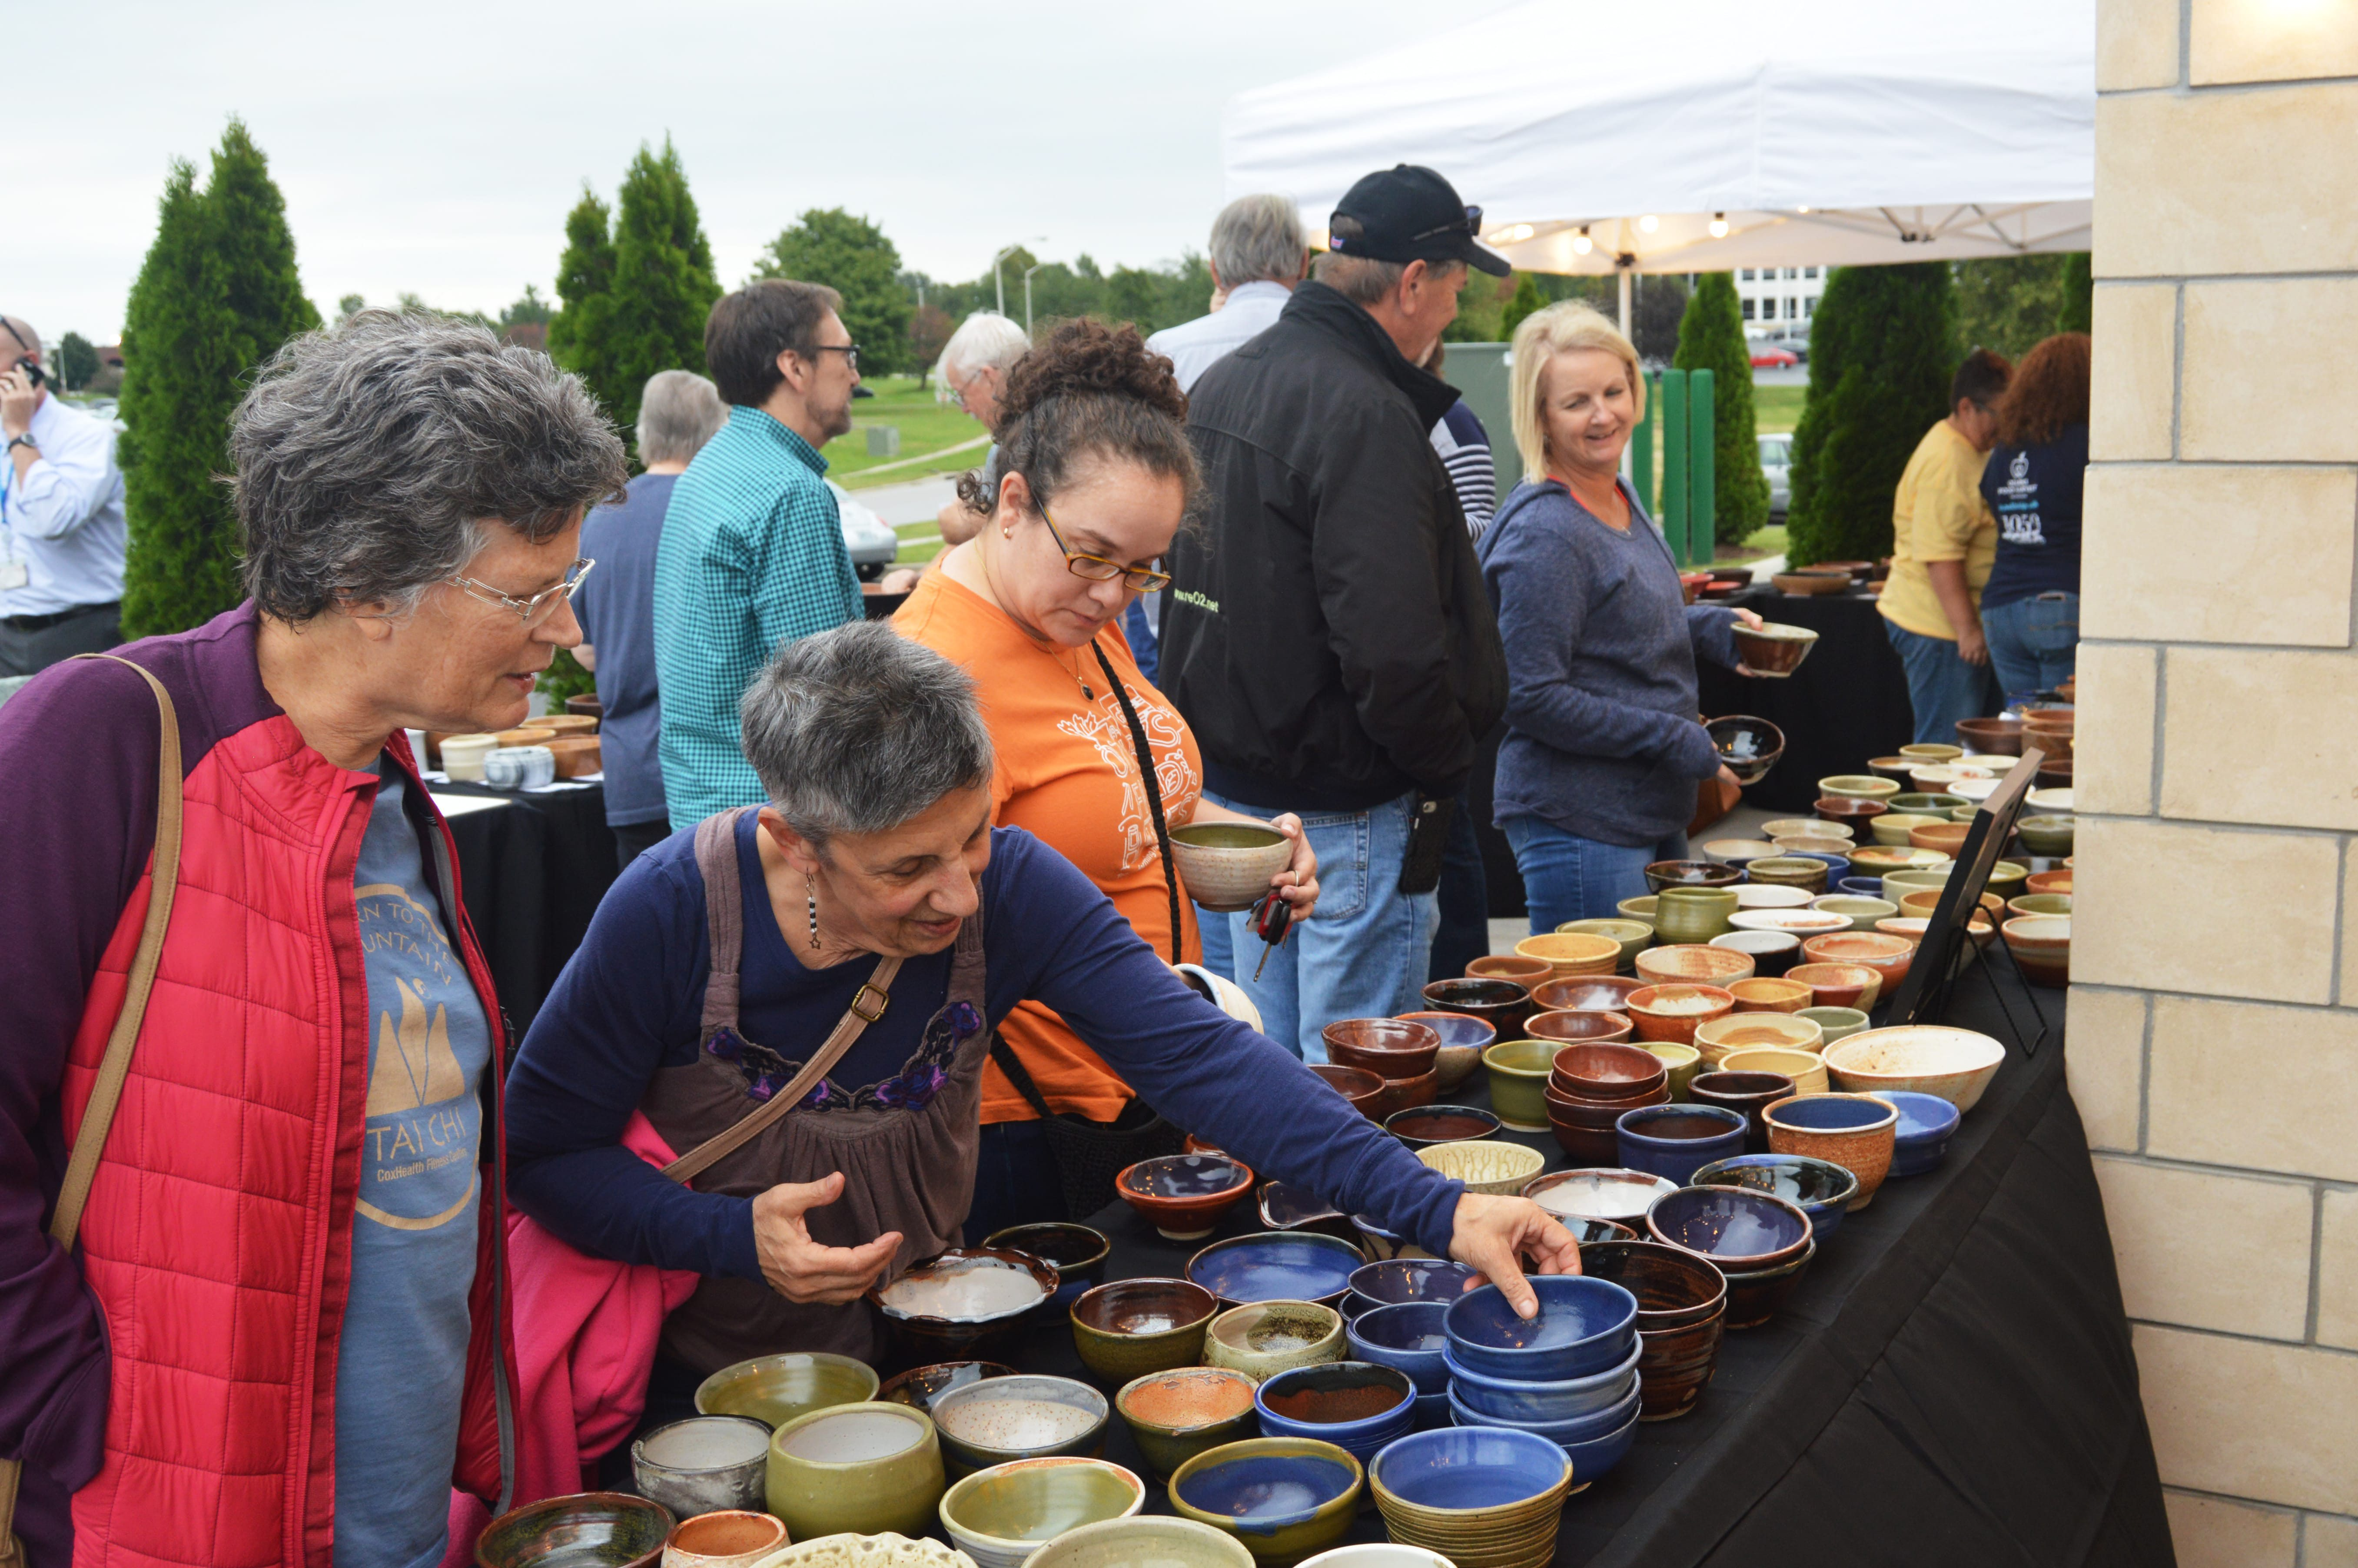 Annual Empty Bowls Event in Springfield, MO.